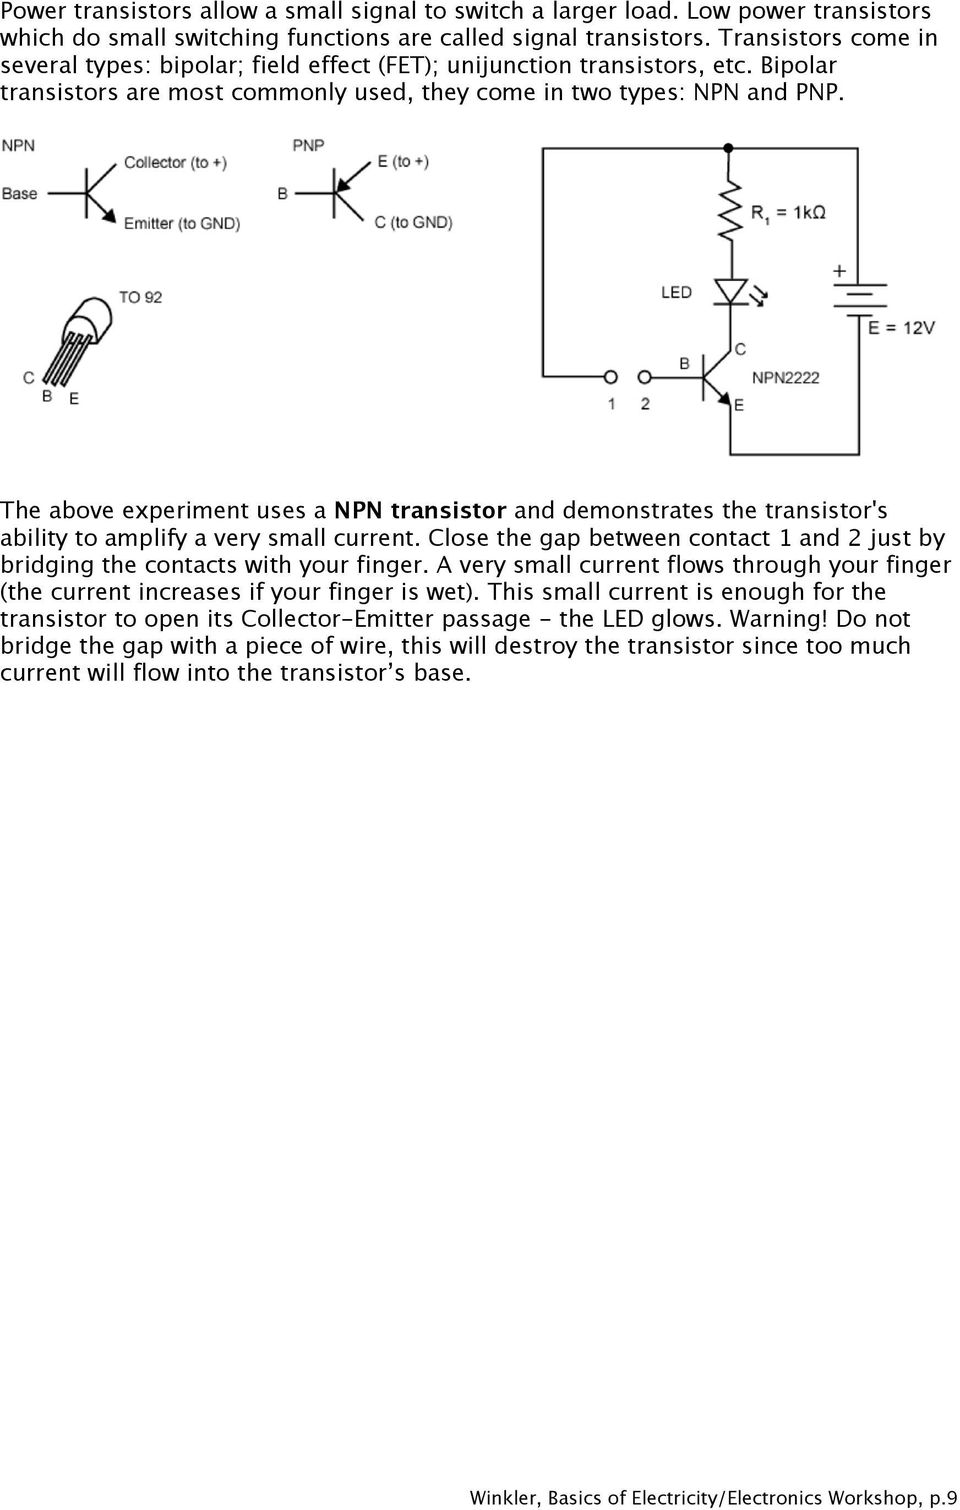 Basics Of Electricity Electronics Fabian Winkler Pdf Max 232n Integrated Circuit Ic Electronic Component Johor End Time 3 The Above Experiment Uses A Npn Transistor And Demonstrates Transistors Ability To Amplify Very